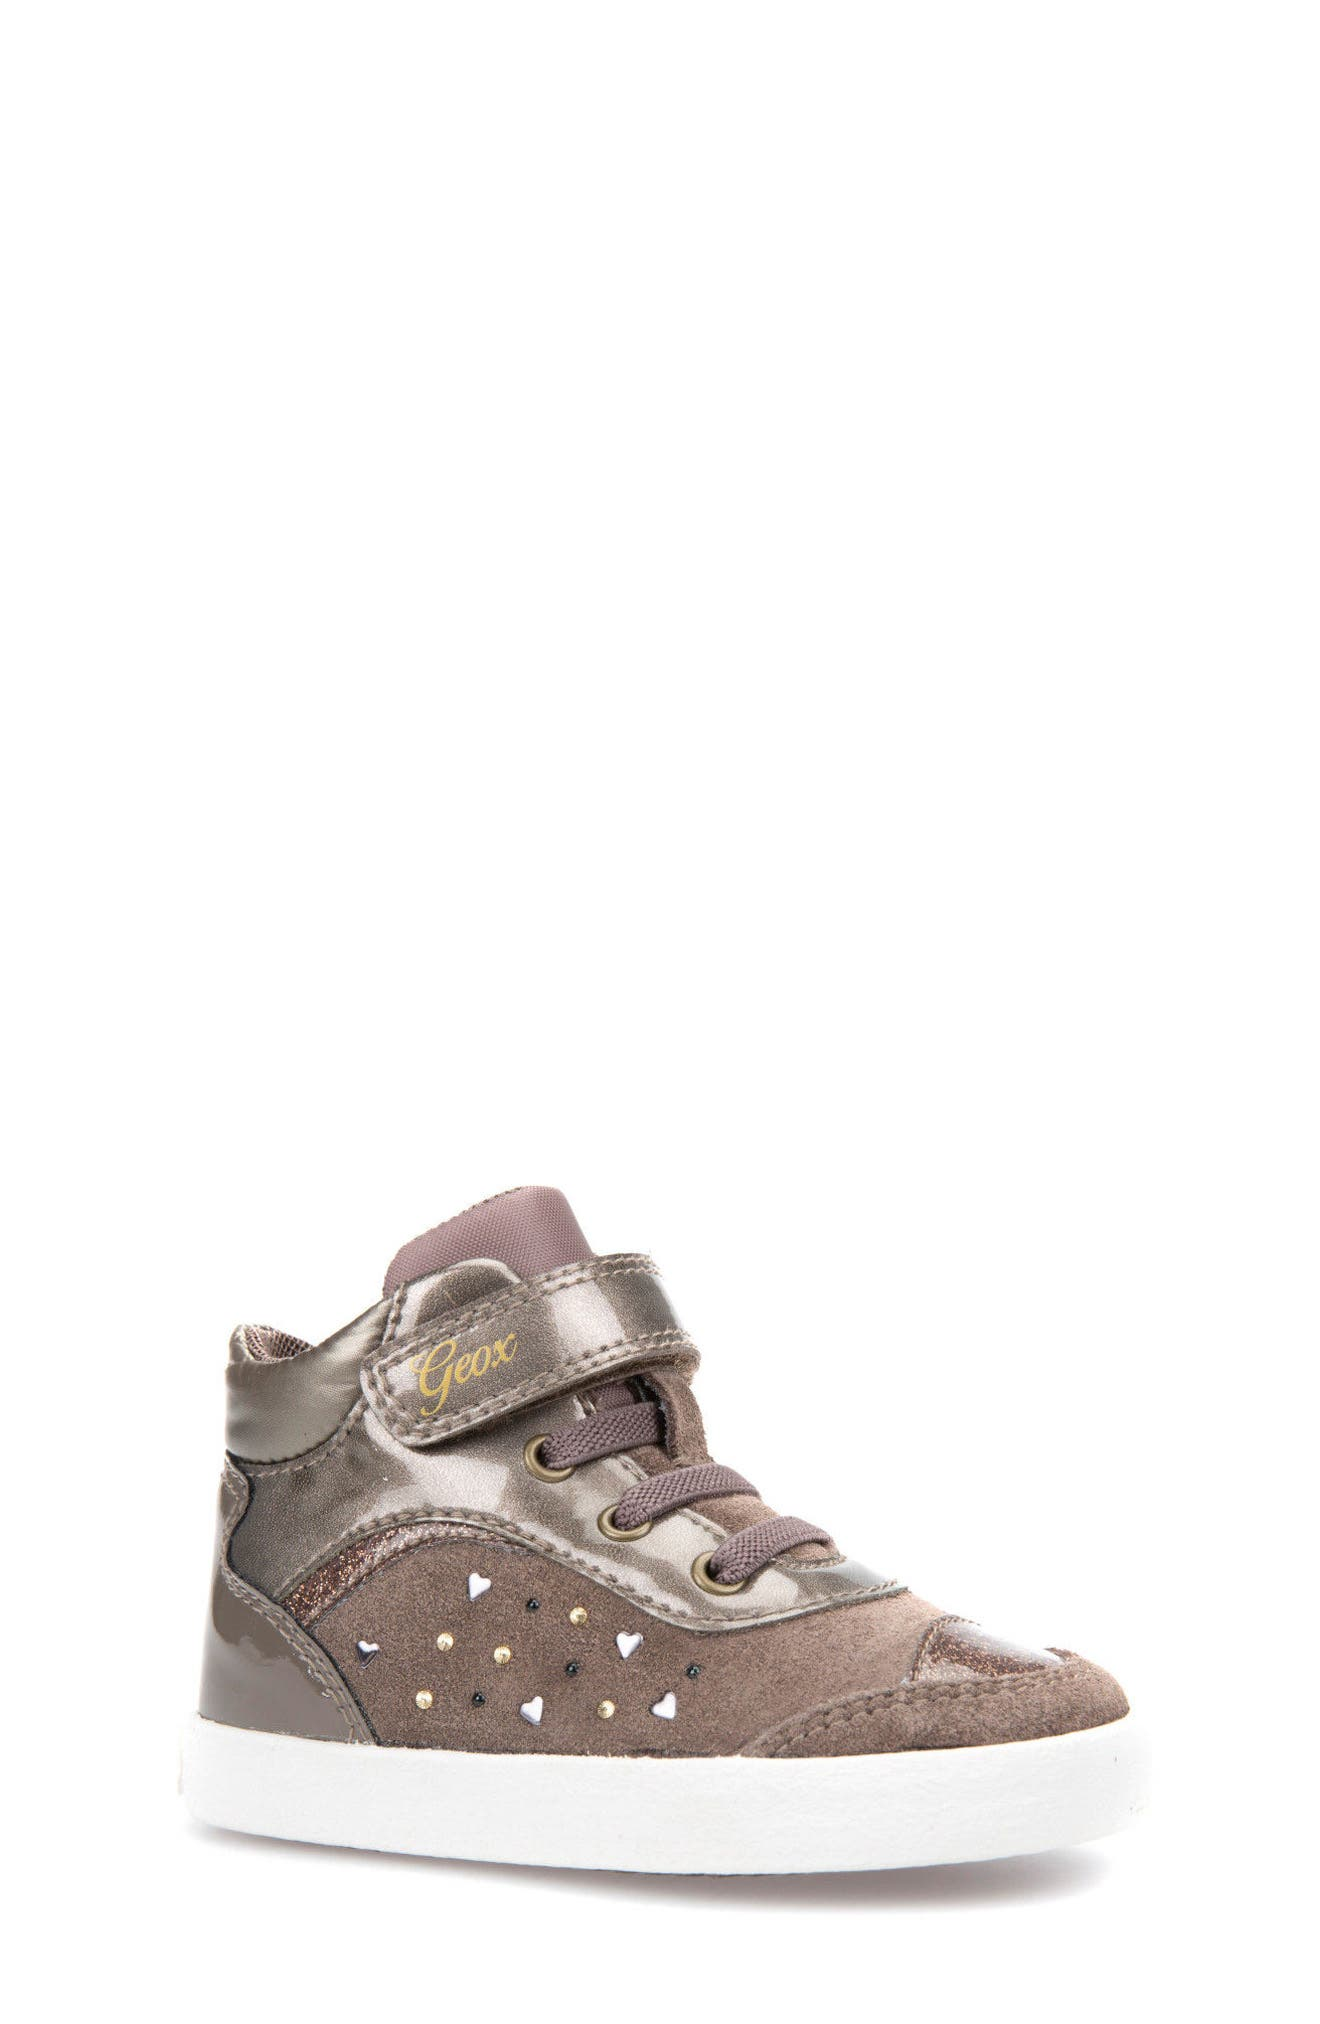 Geox Kiwi Girl Studded High Top Sneaker (Walker & Toddler)